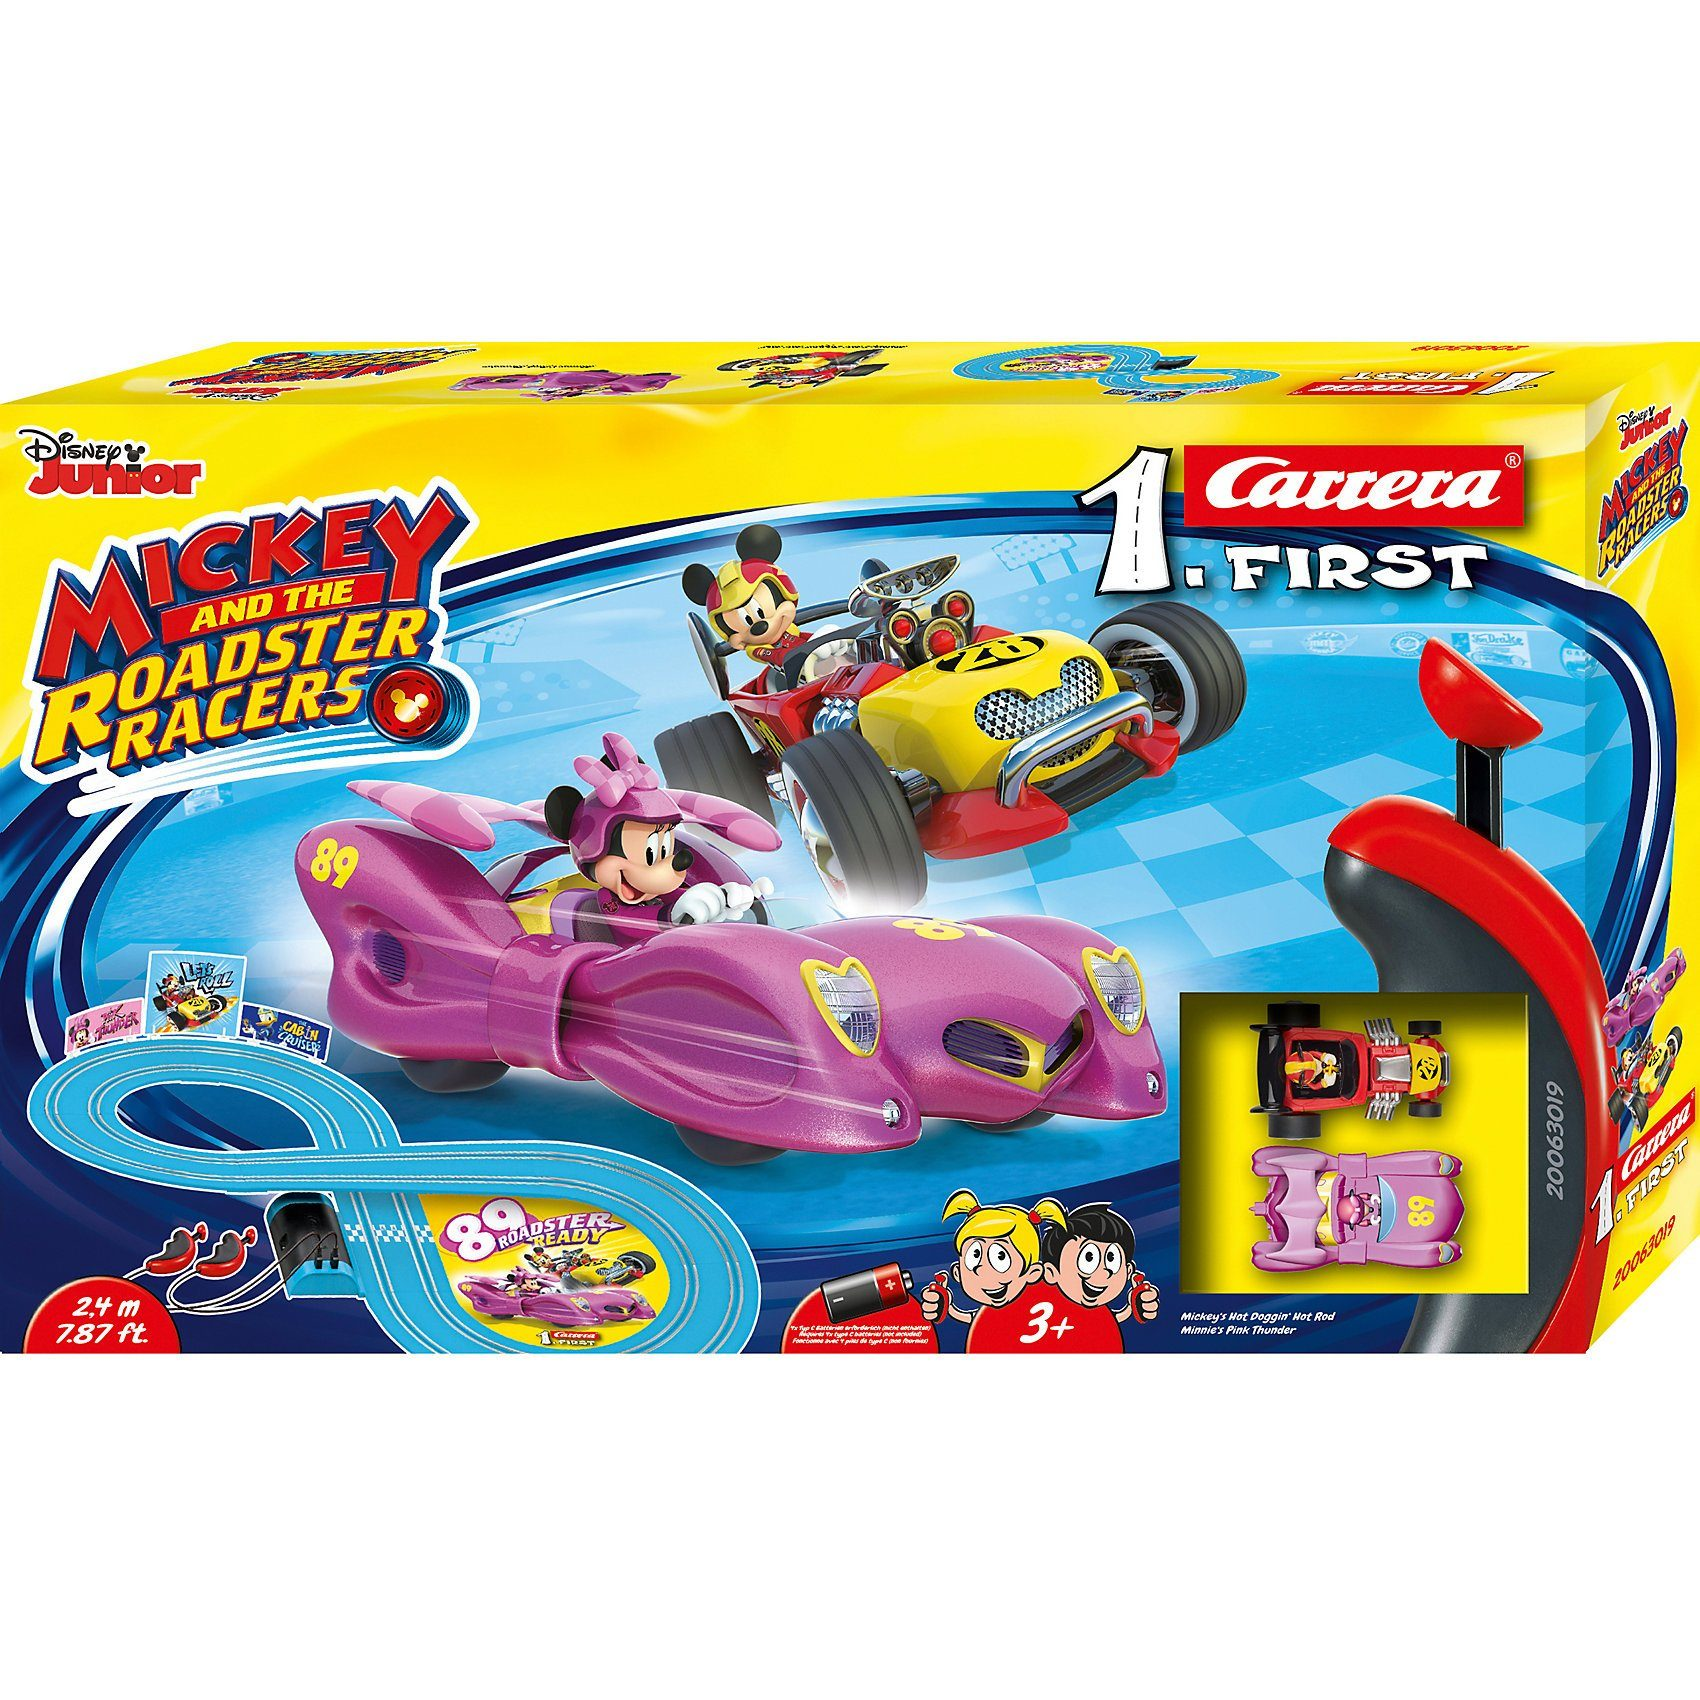 Carrera® First Mickey and the Roadster Racers - Minnie